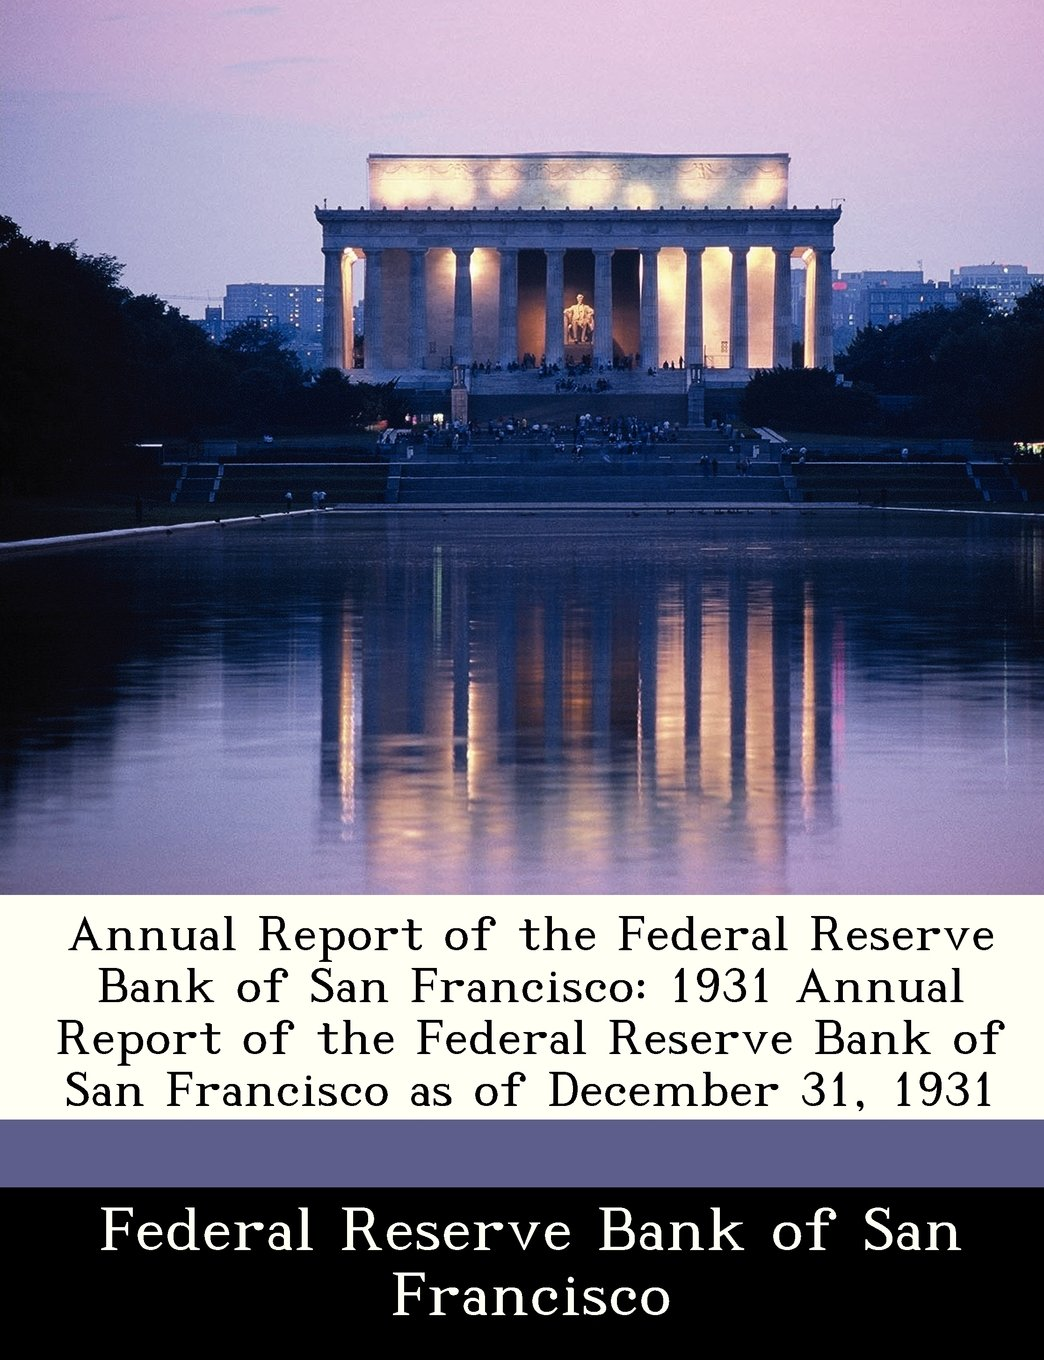 Annual Report of the Federal Reserve Bank of San Francisco: 1931 Annual Report of the Federal Reserve Bank of San Francisco as of December 31, 1931 pdf